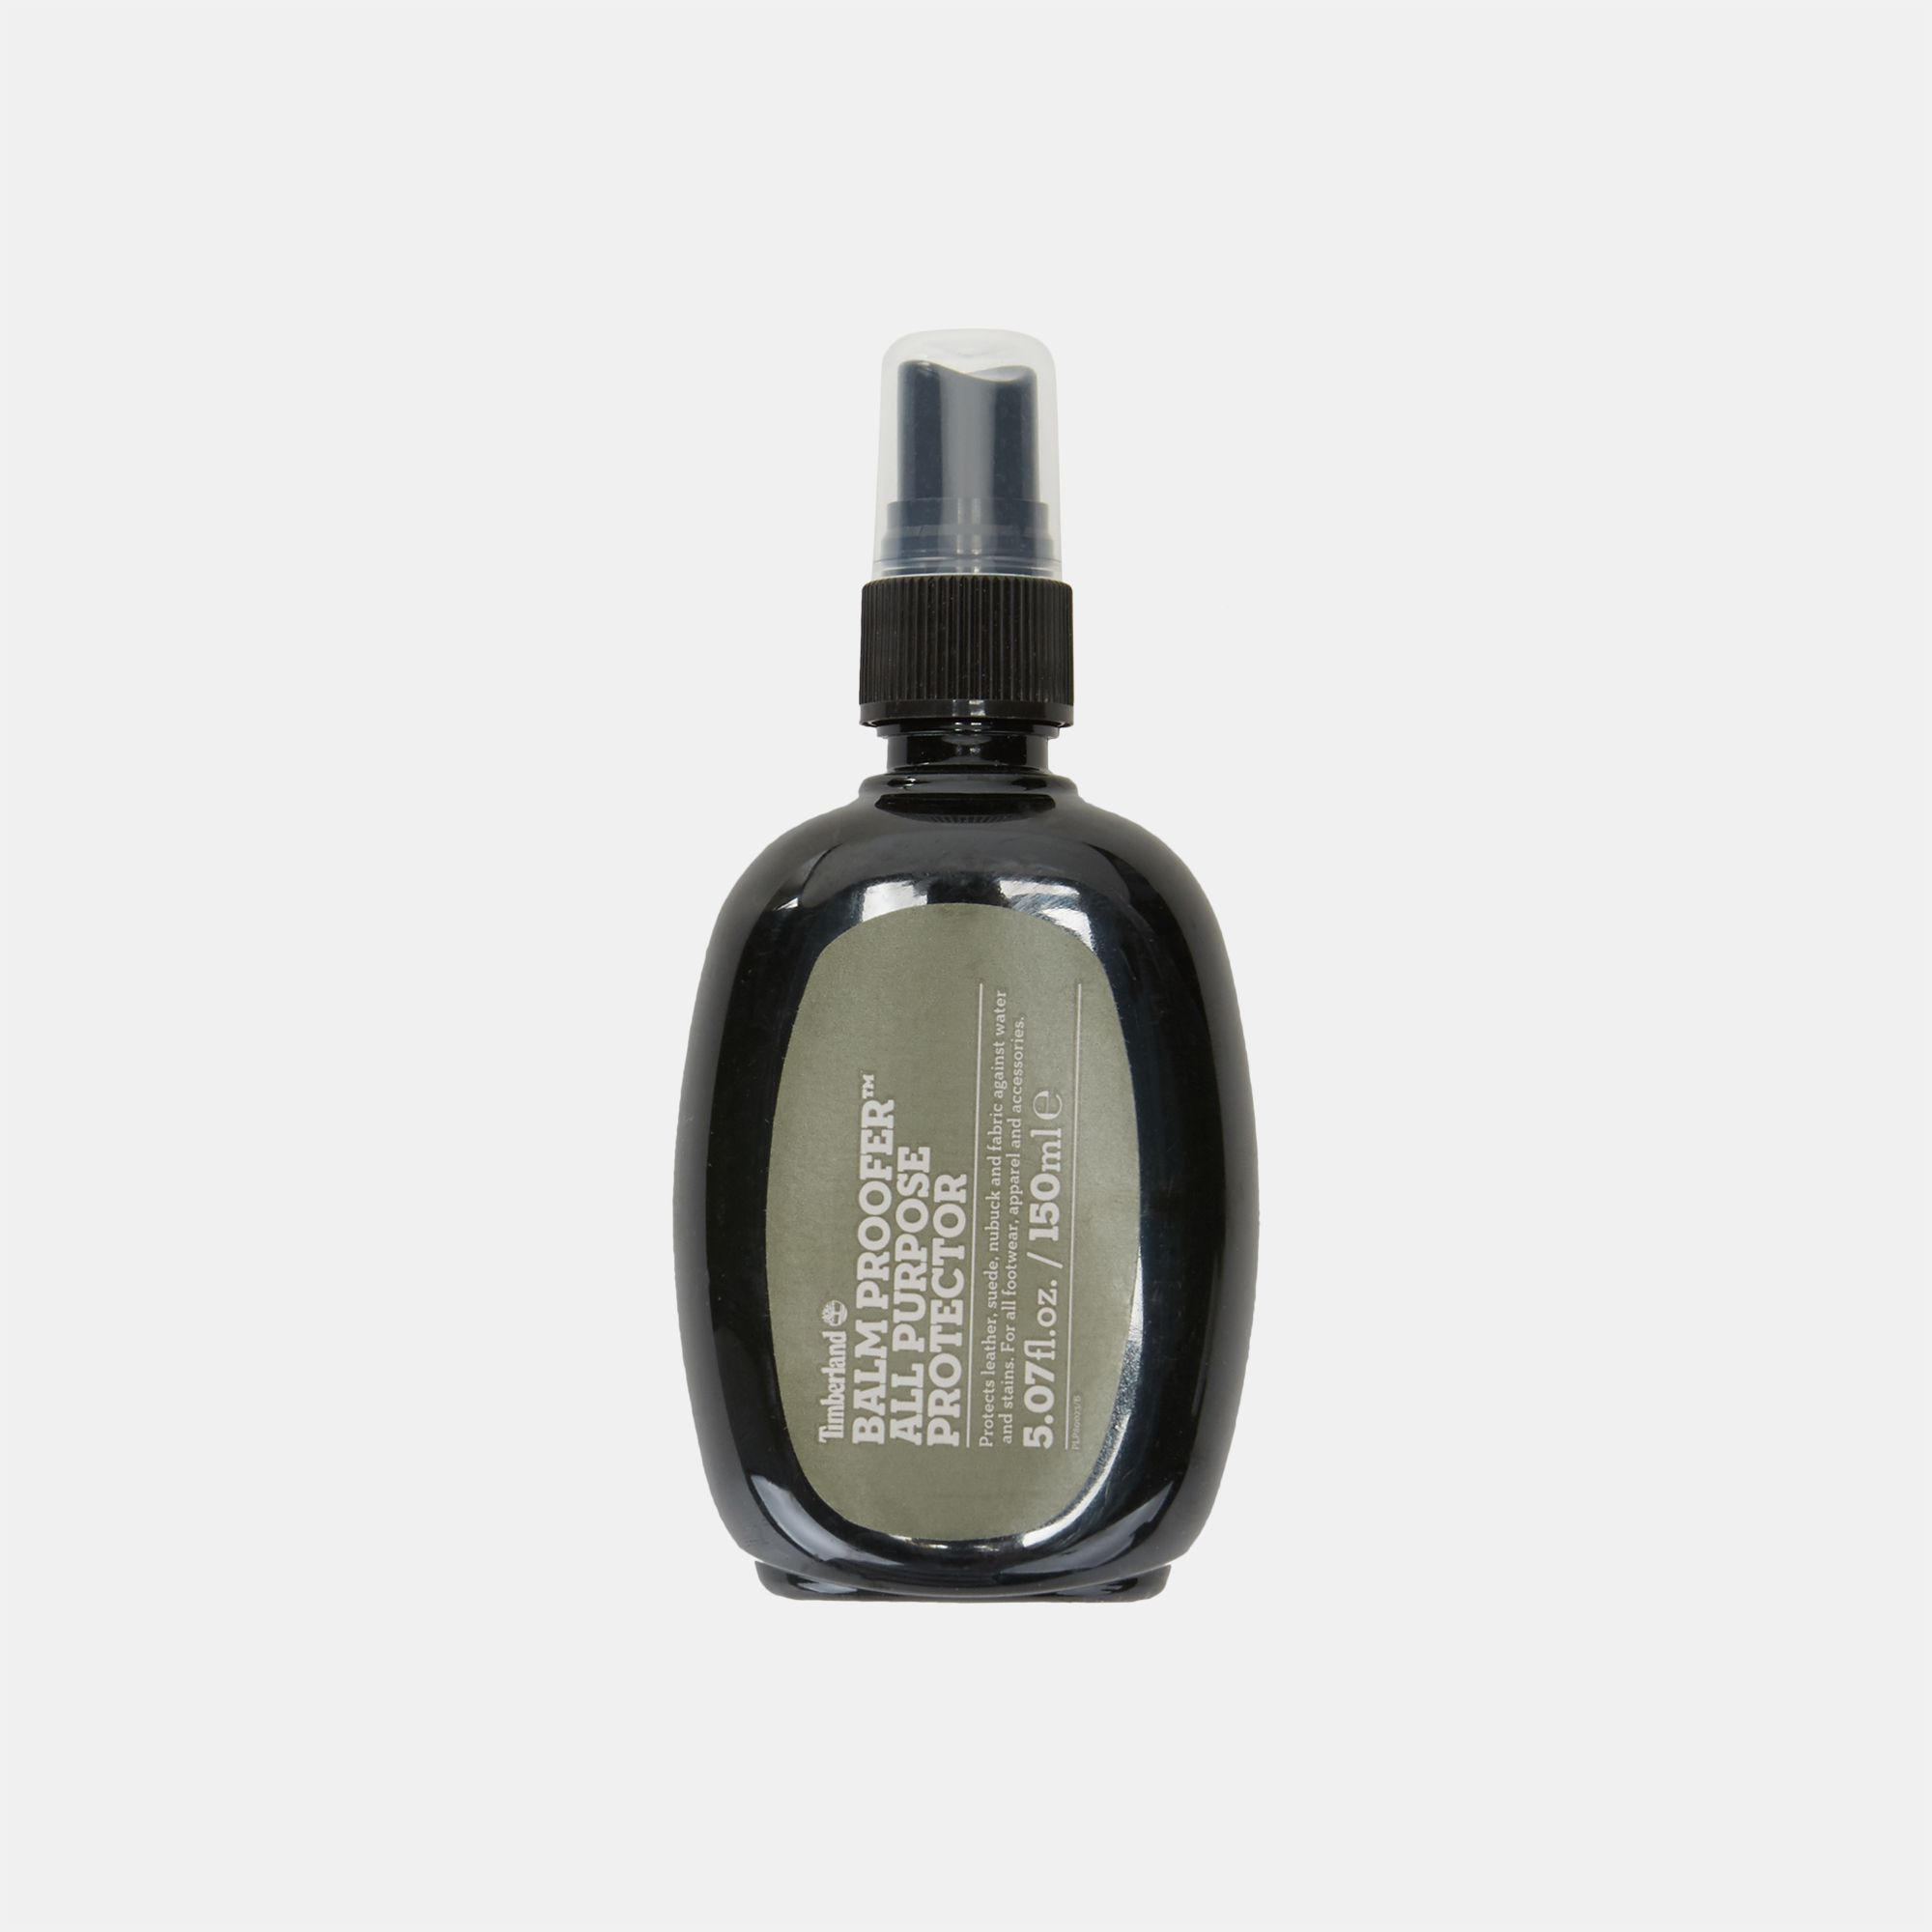 5eee55a0f2 Timberland Balm Proofer™ All Purpose Protector | Accessories ...